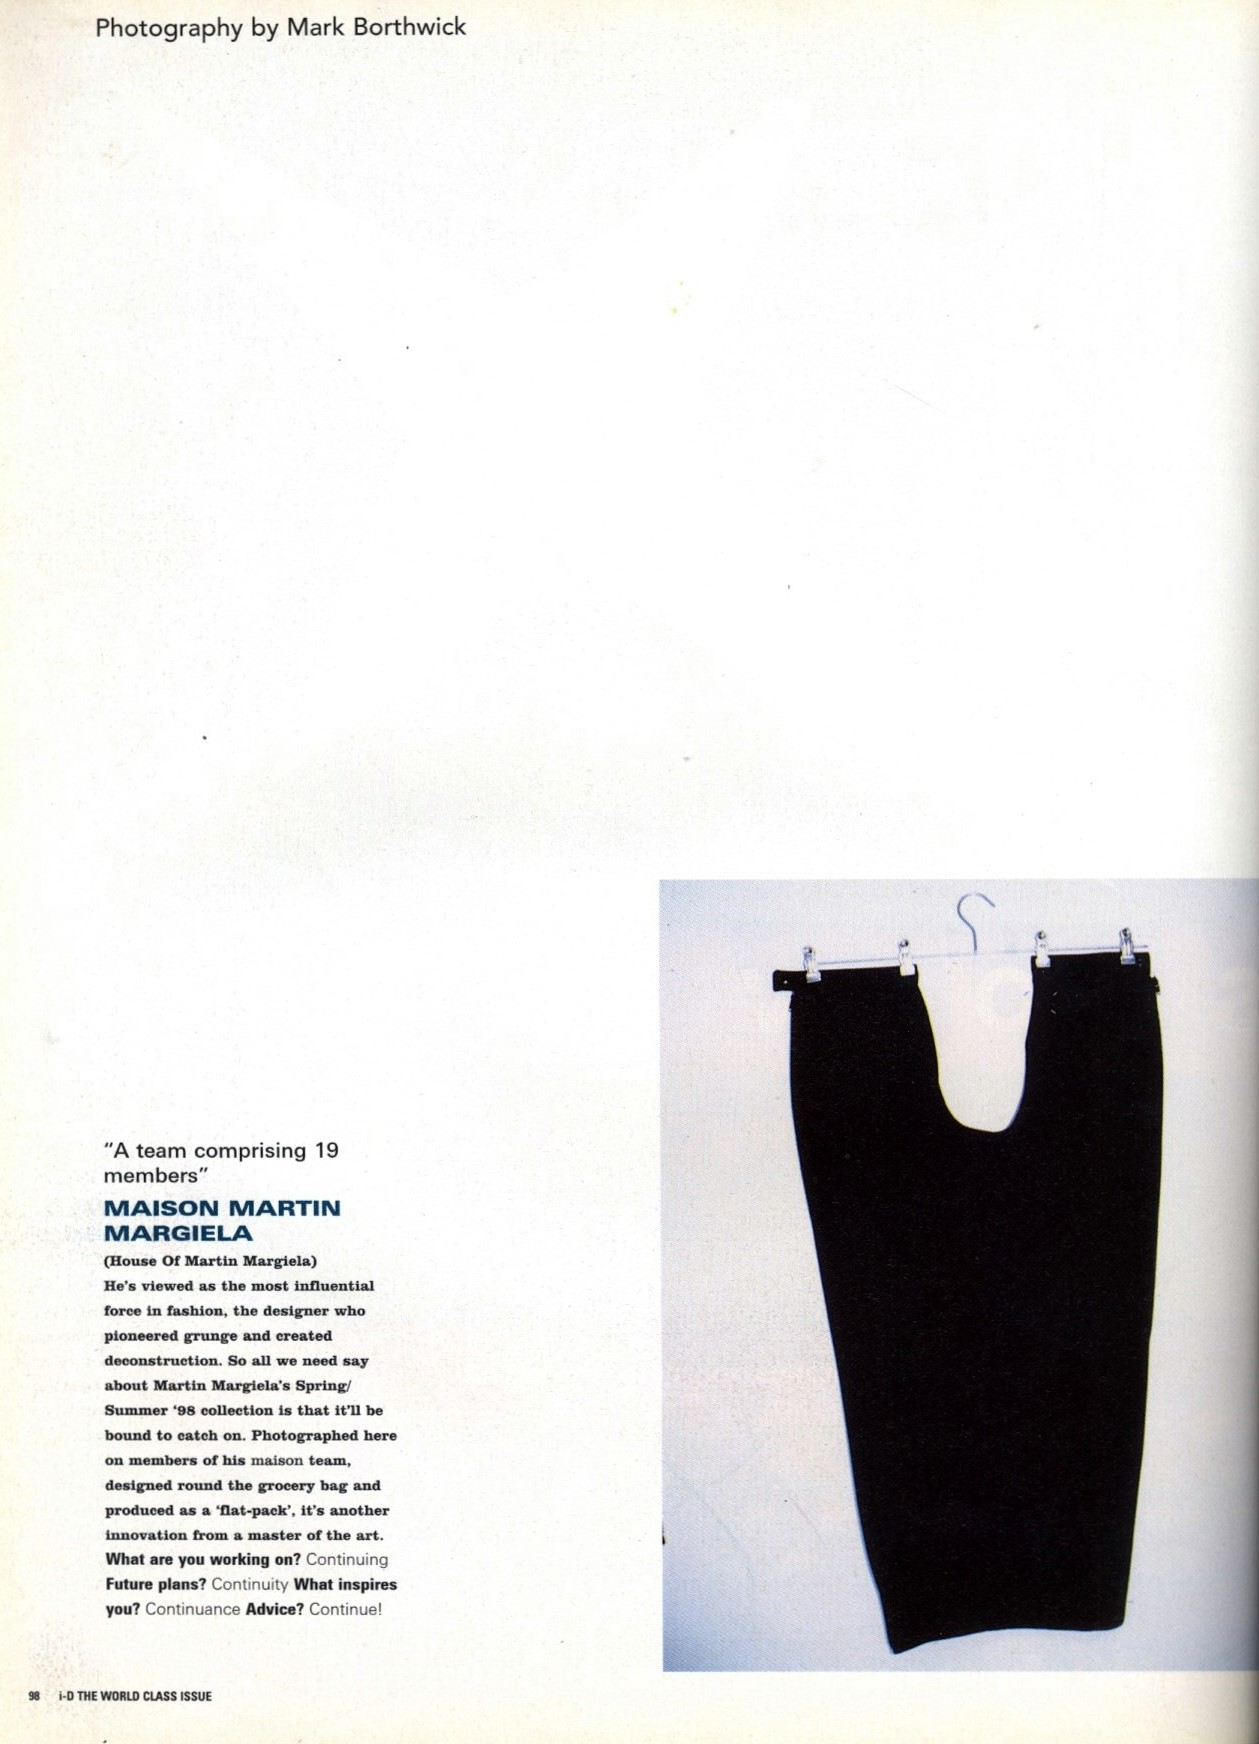 MAISON MARTIN MARGIELA | PHOTOGRAPHY MARK BORTHWICK | i-D MAGAZINE NO.174 | APRIL 1998